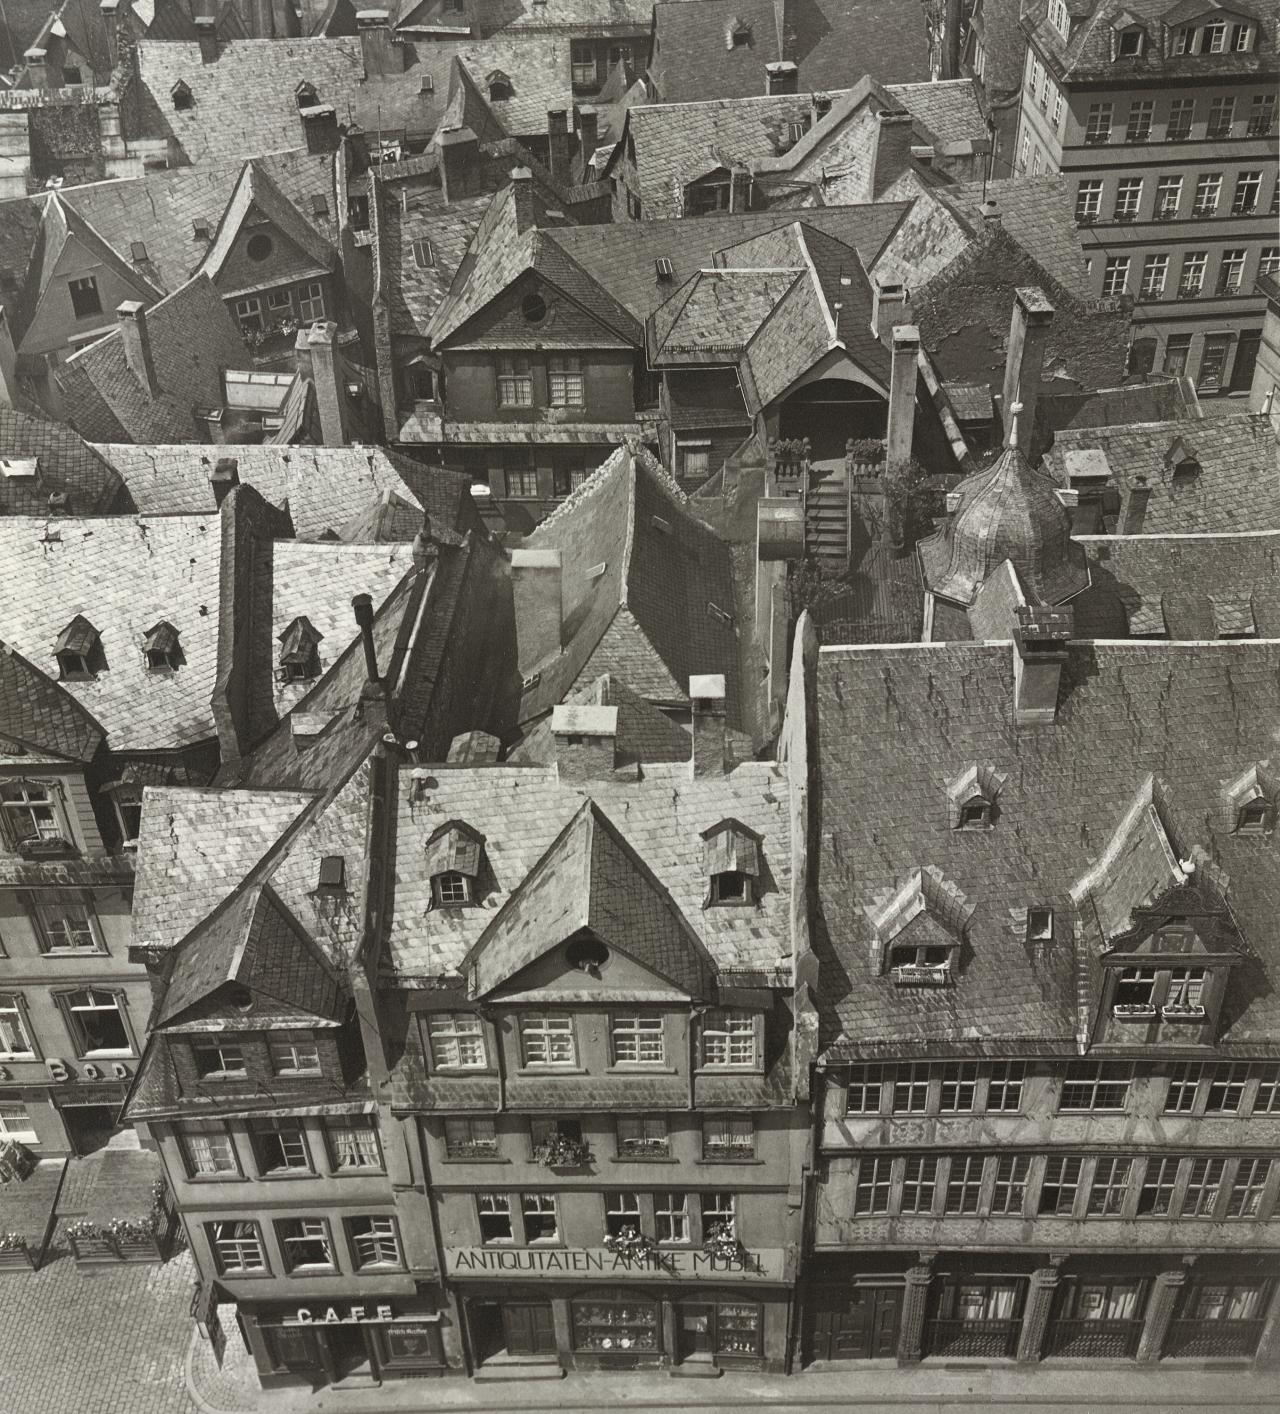 Old Frankfurt before its total destruction in World War II, Germany